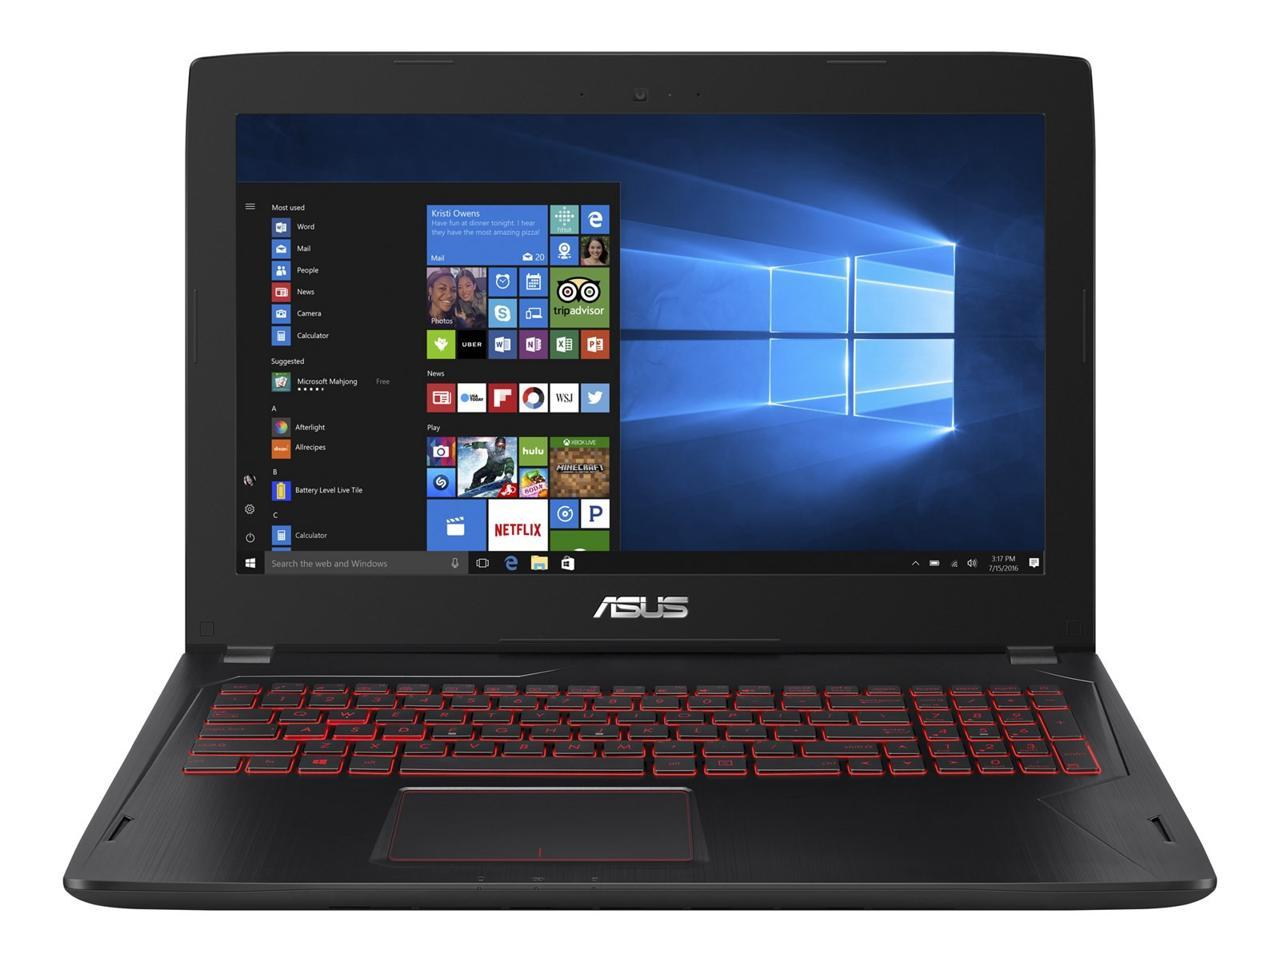 ASUS FX502VM-AS73 Gaming Laptop Intel Core i7 7th Gen 7700HQ (2 80